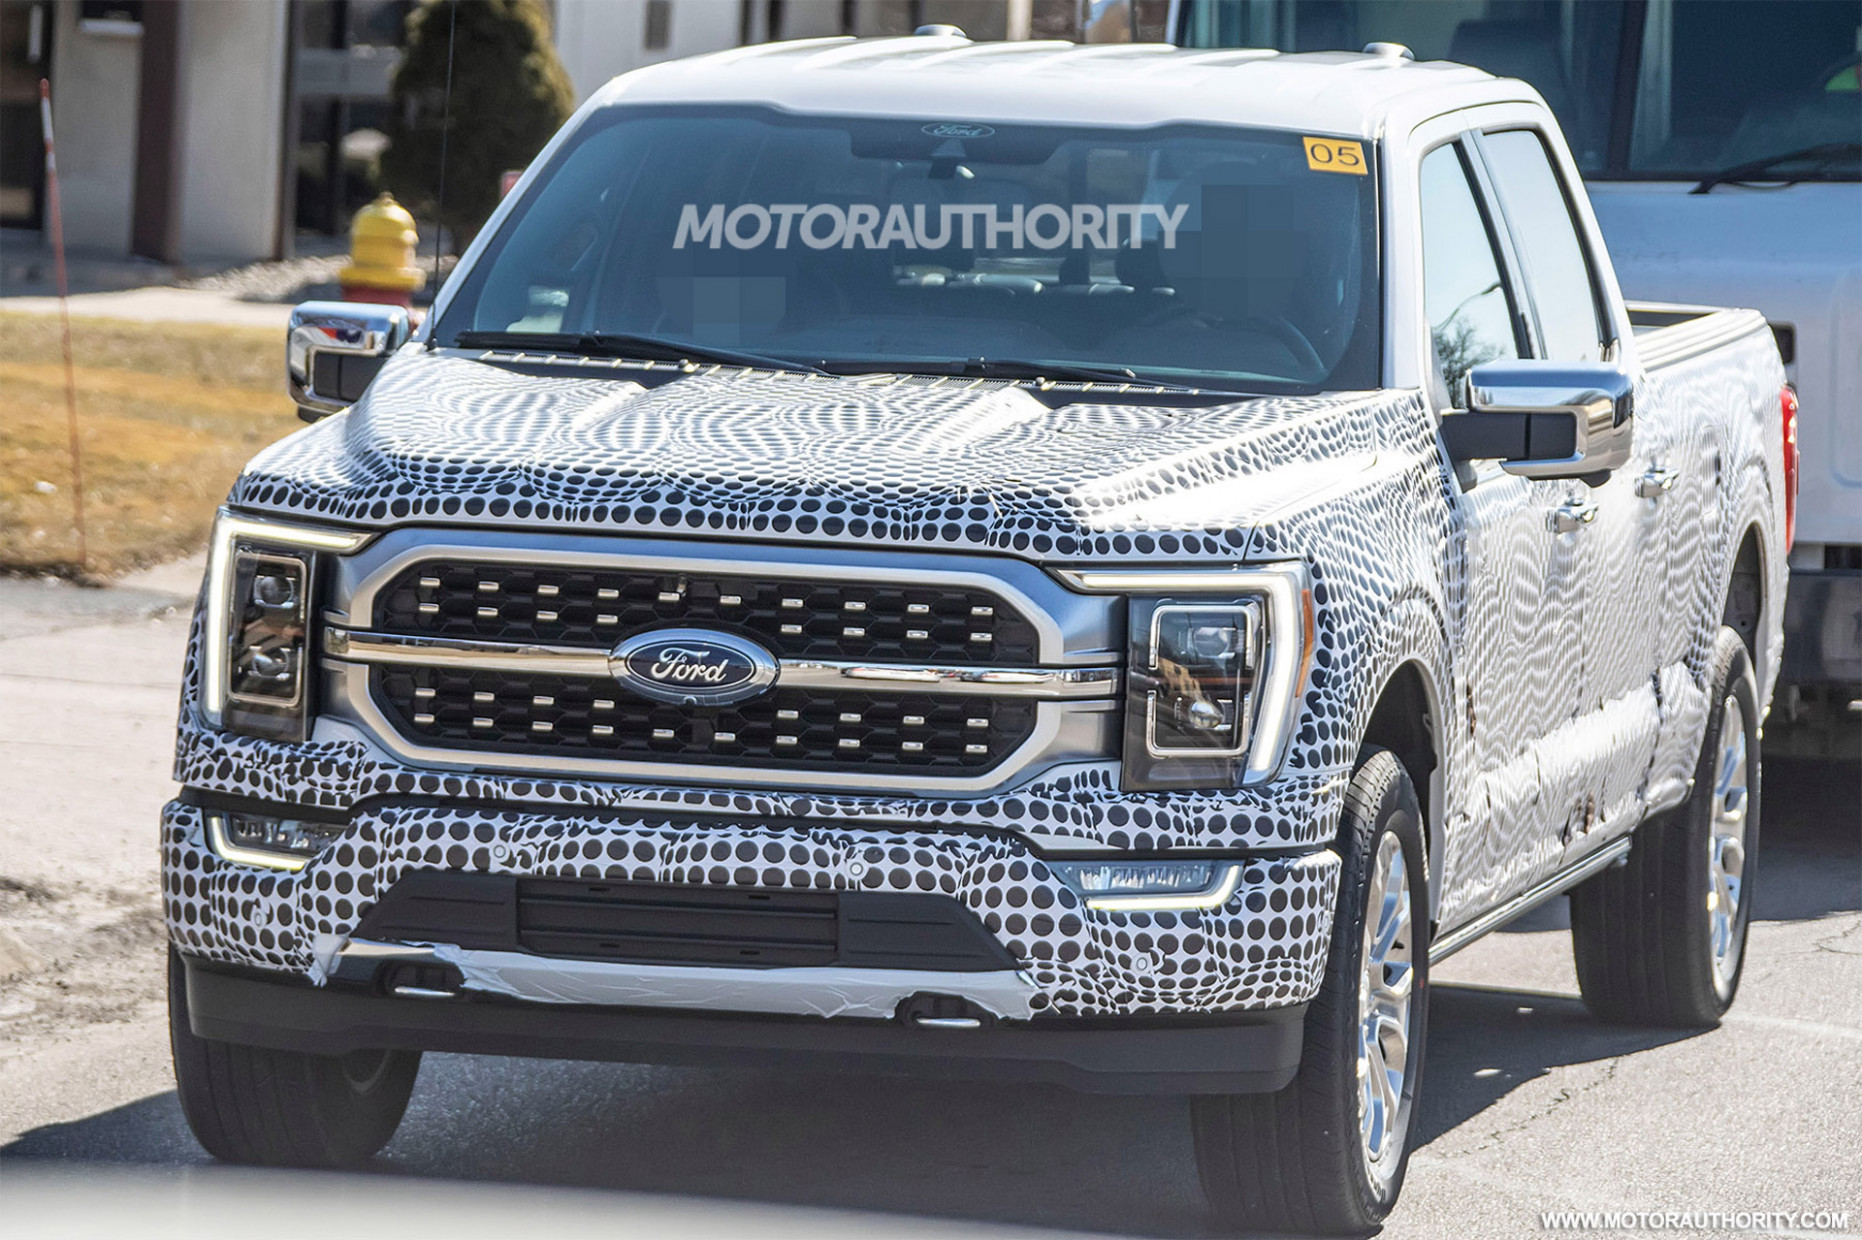 Performance 2022 Spy Shots Ford F350 Diesel